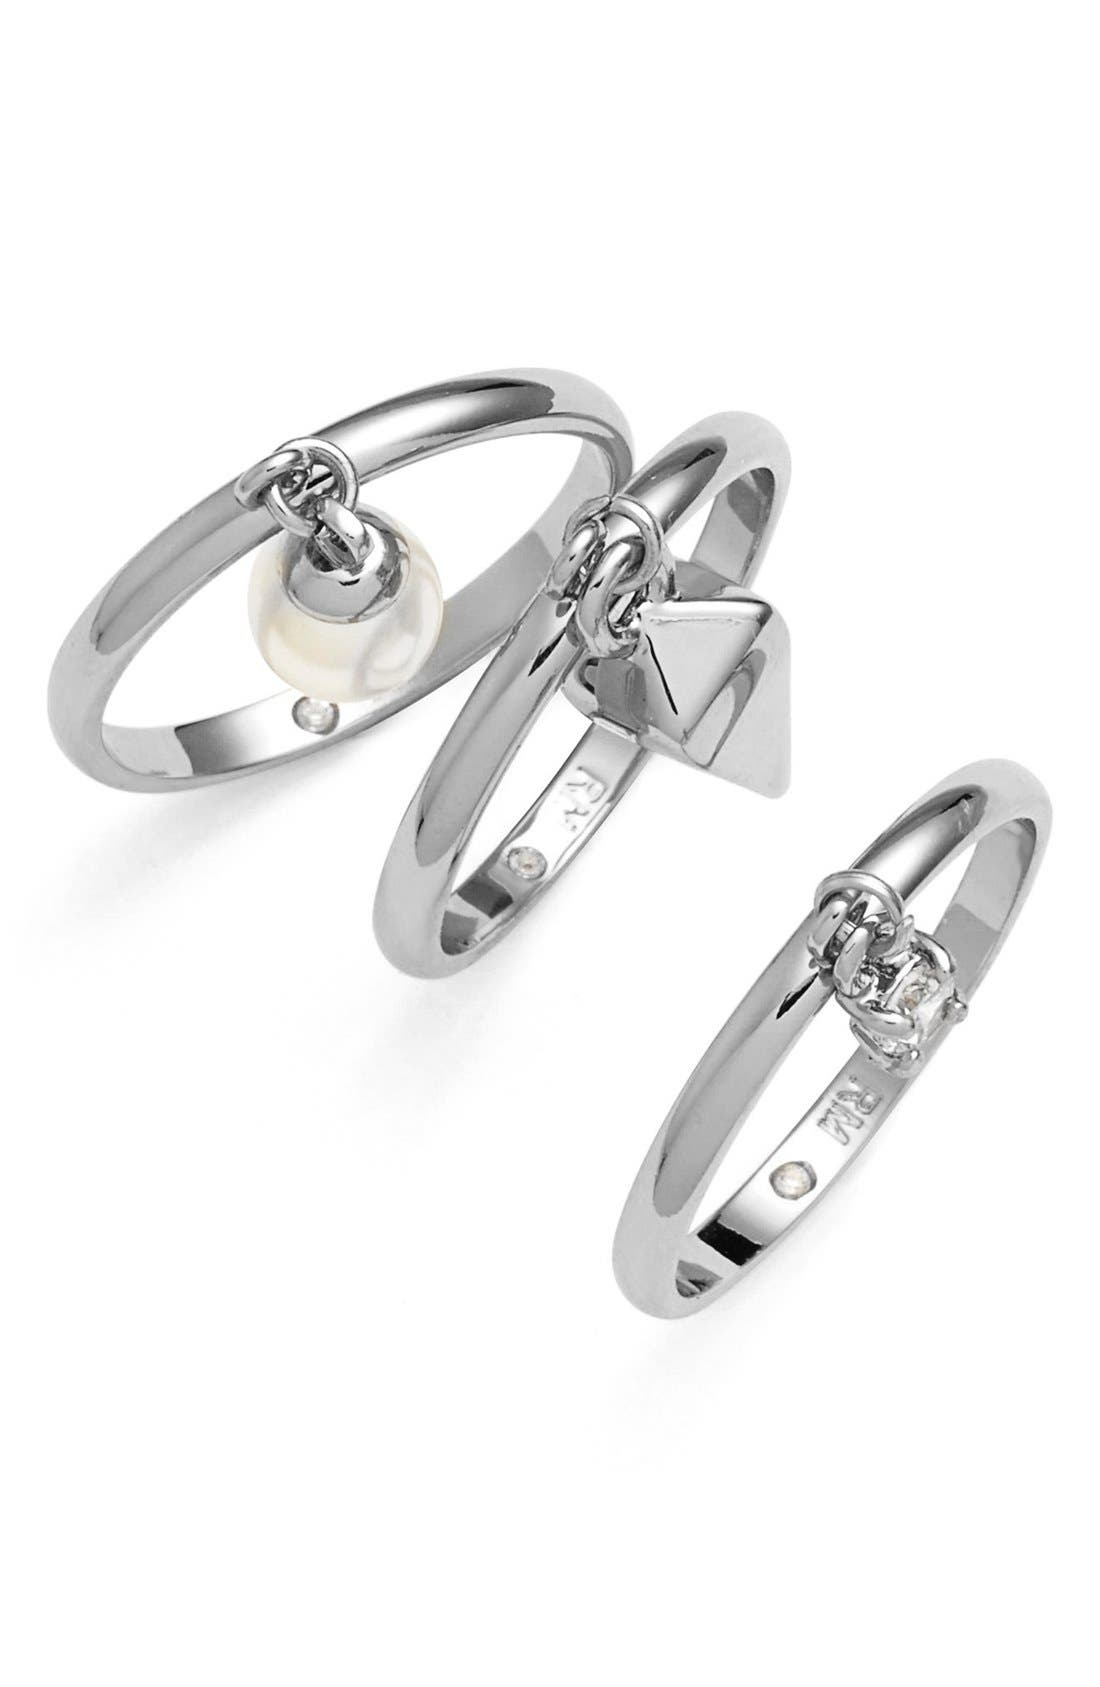 Main Image - Rebecca Minkoff 'Jewel Box' Stackable Charm Rings (Set of 3)